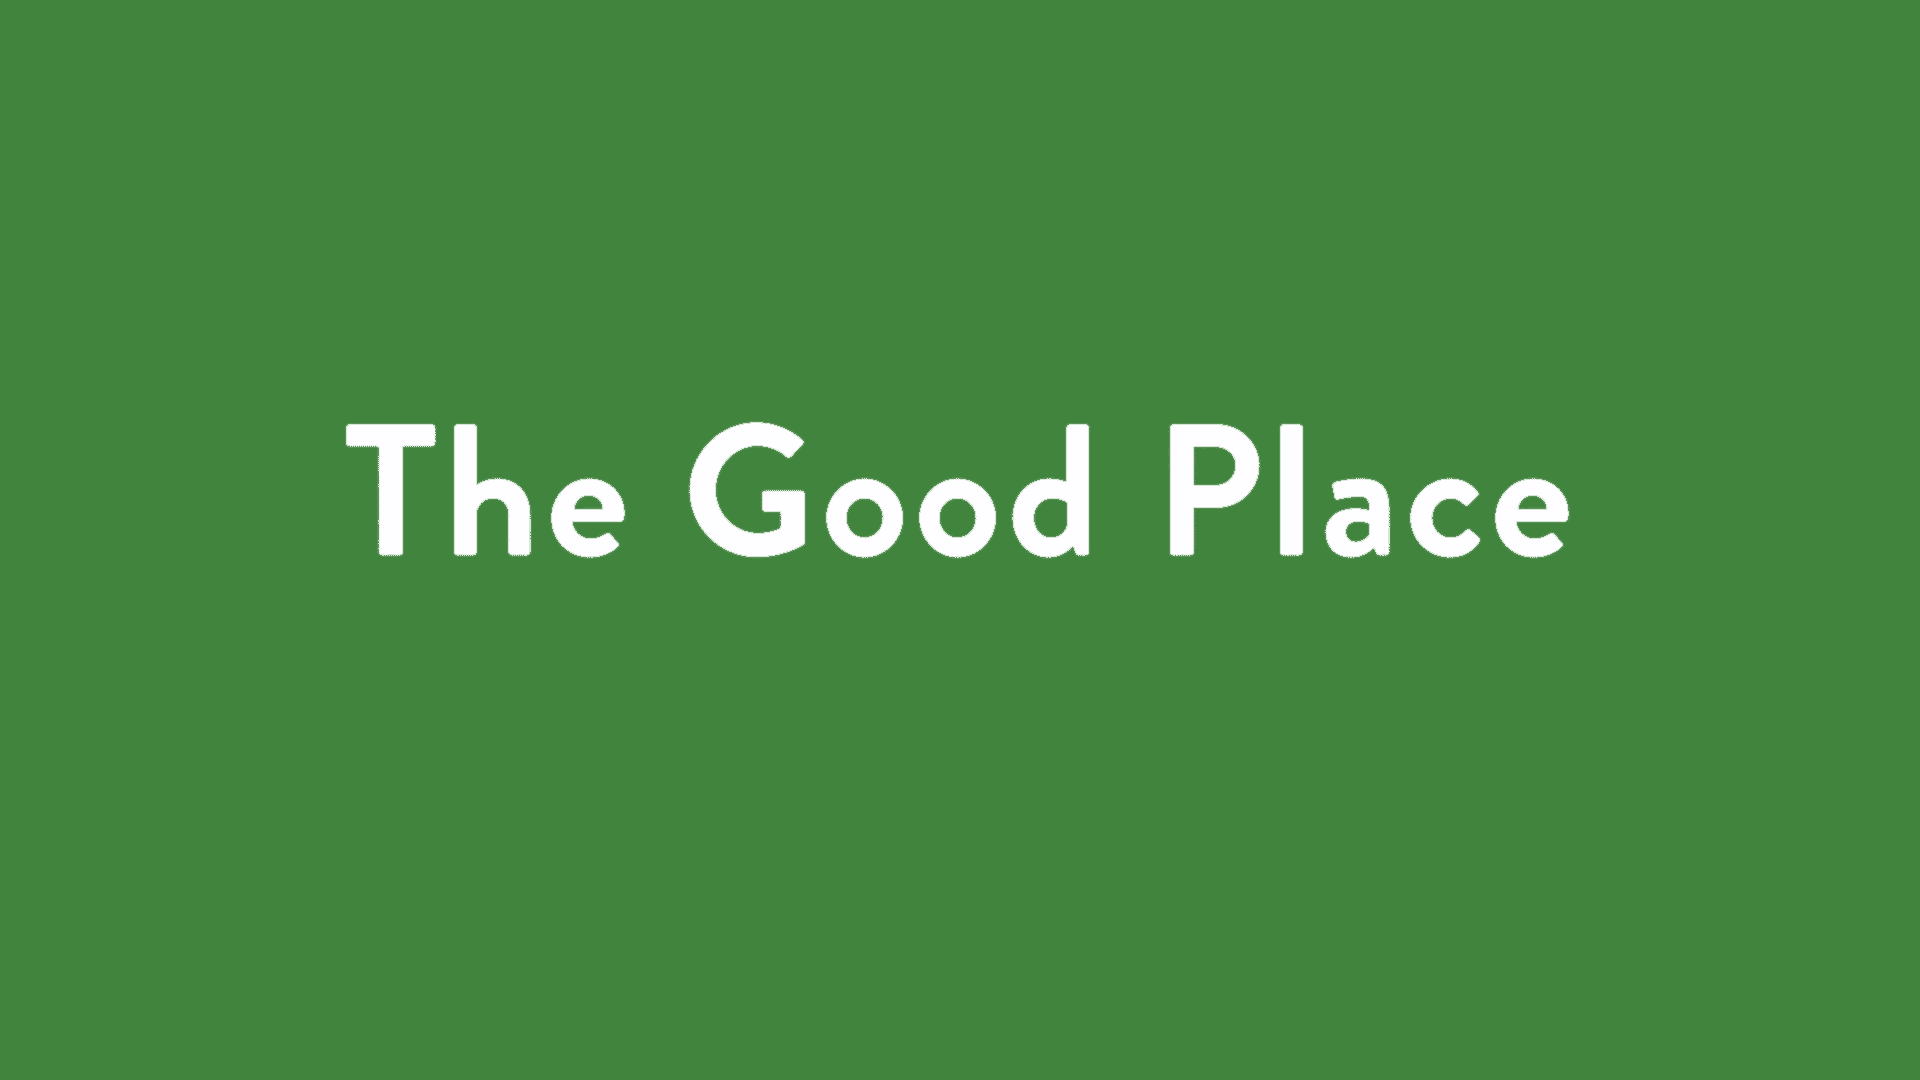 the good place tv series title